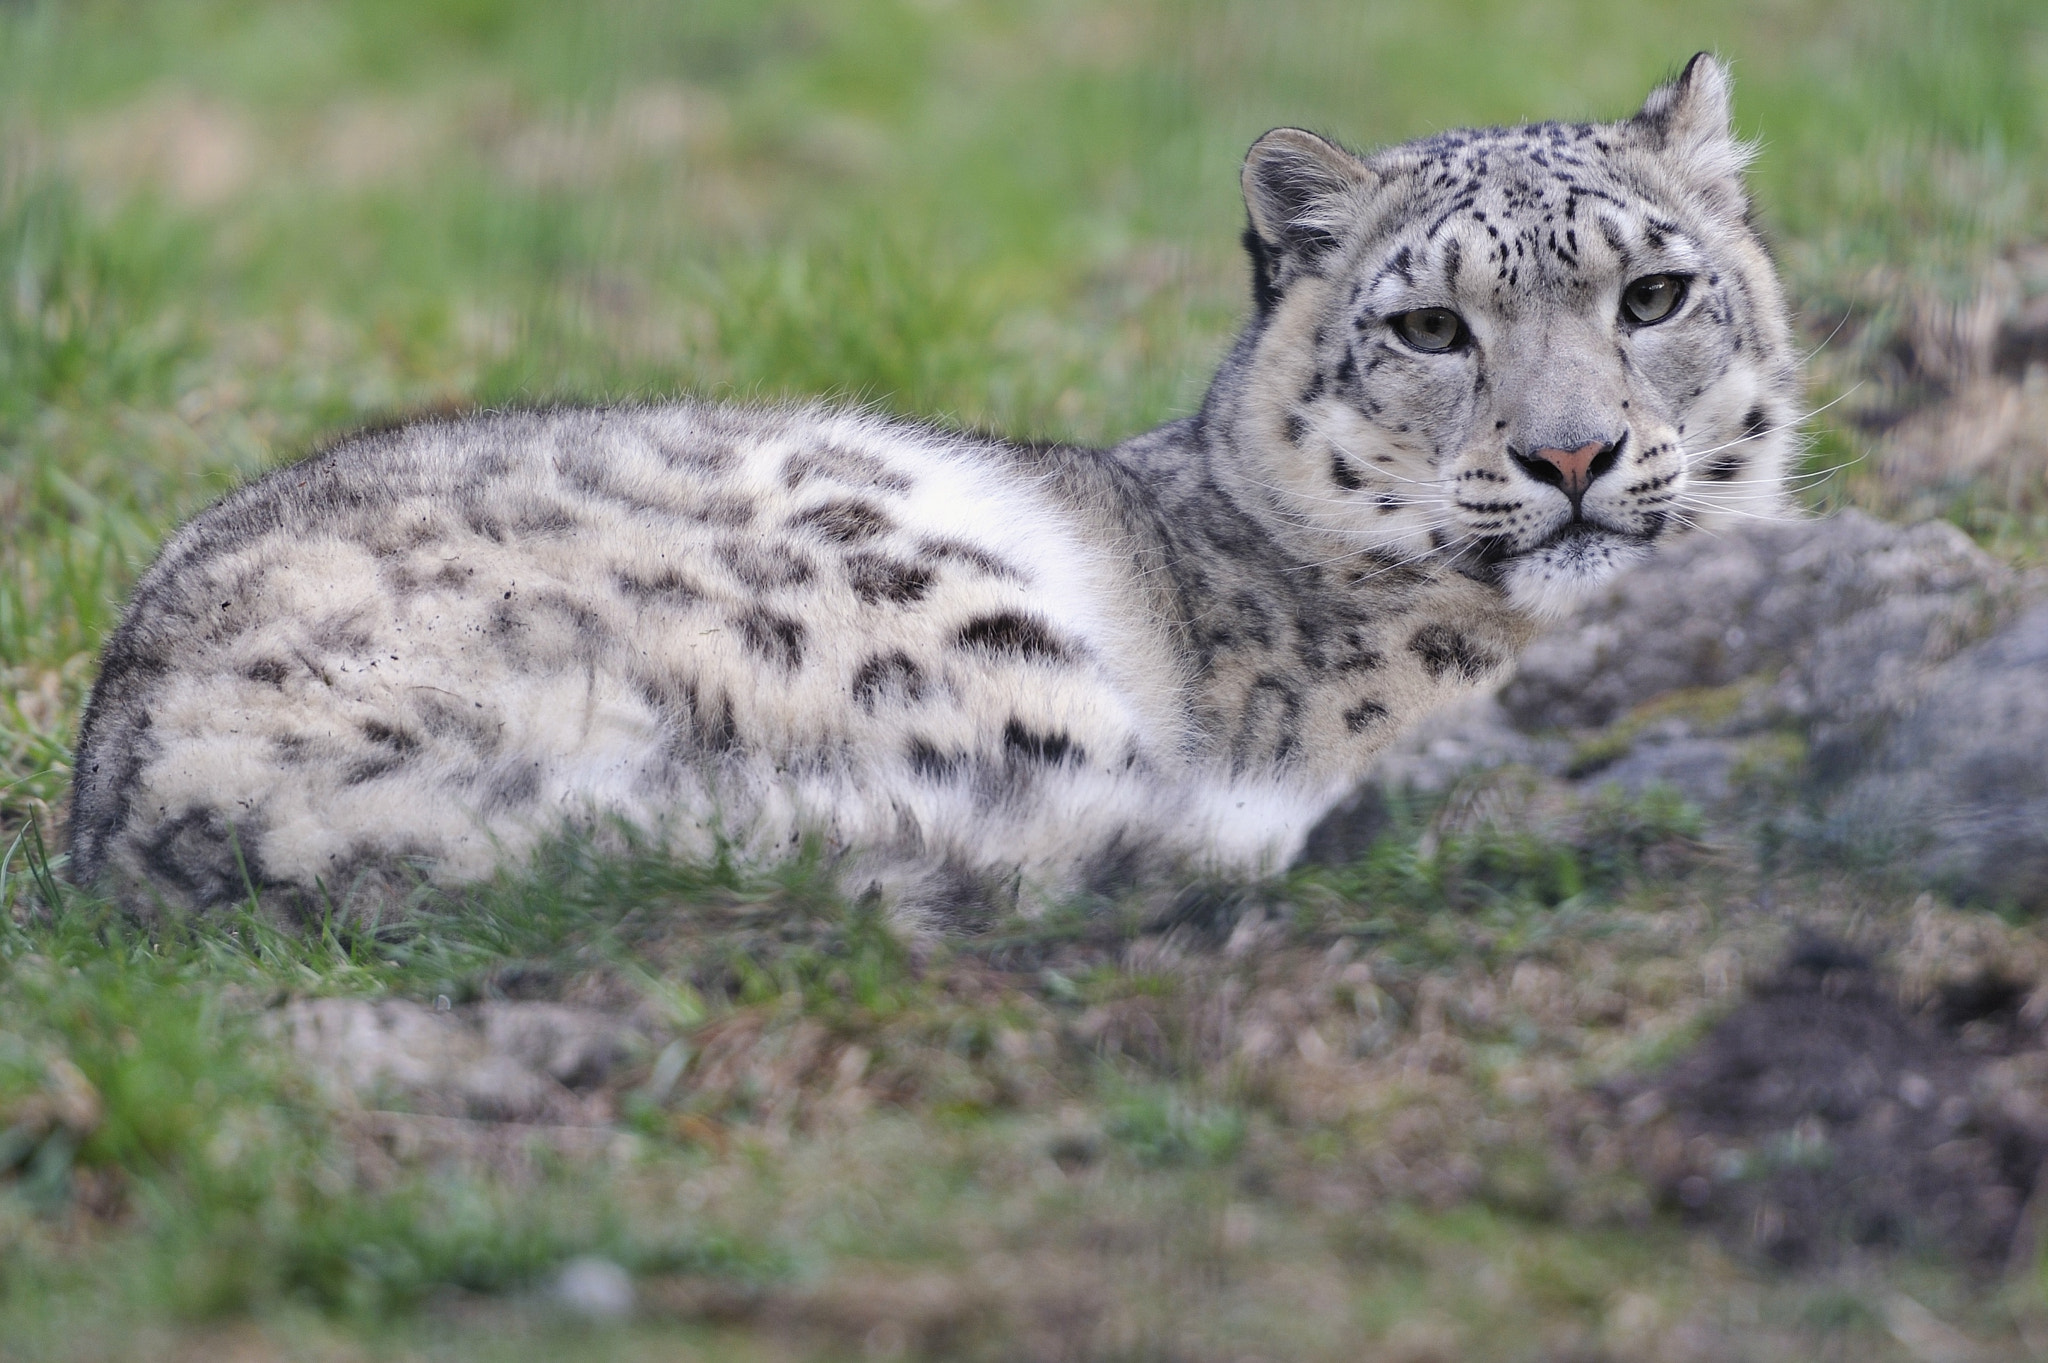 Photograph Snow Leopard by Josef Gelernter on 500px